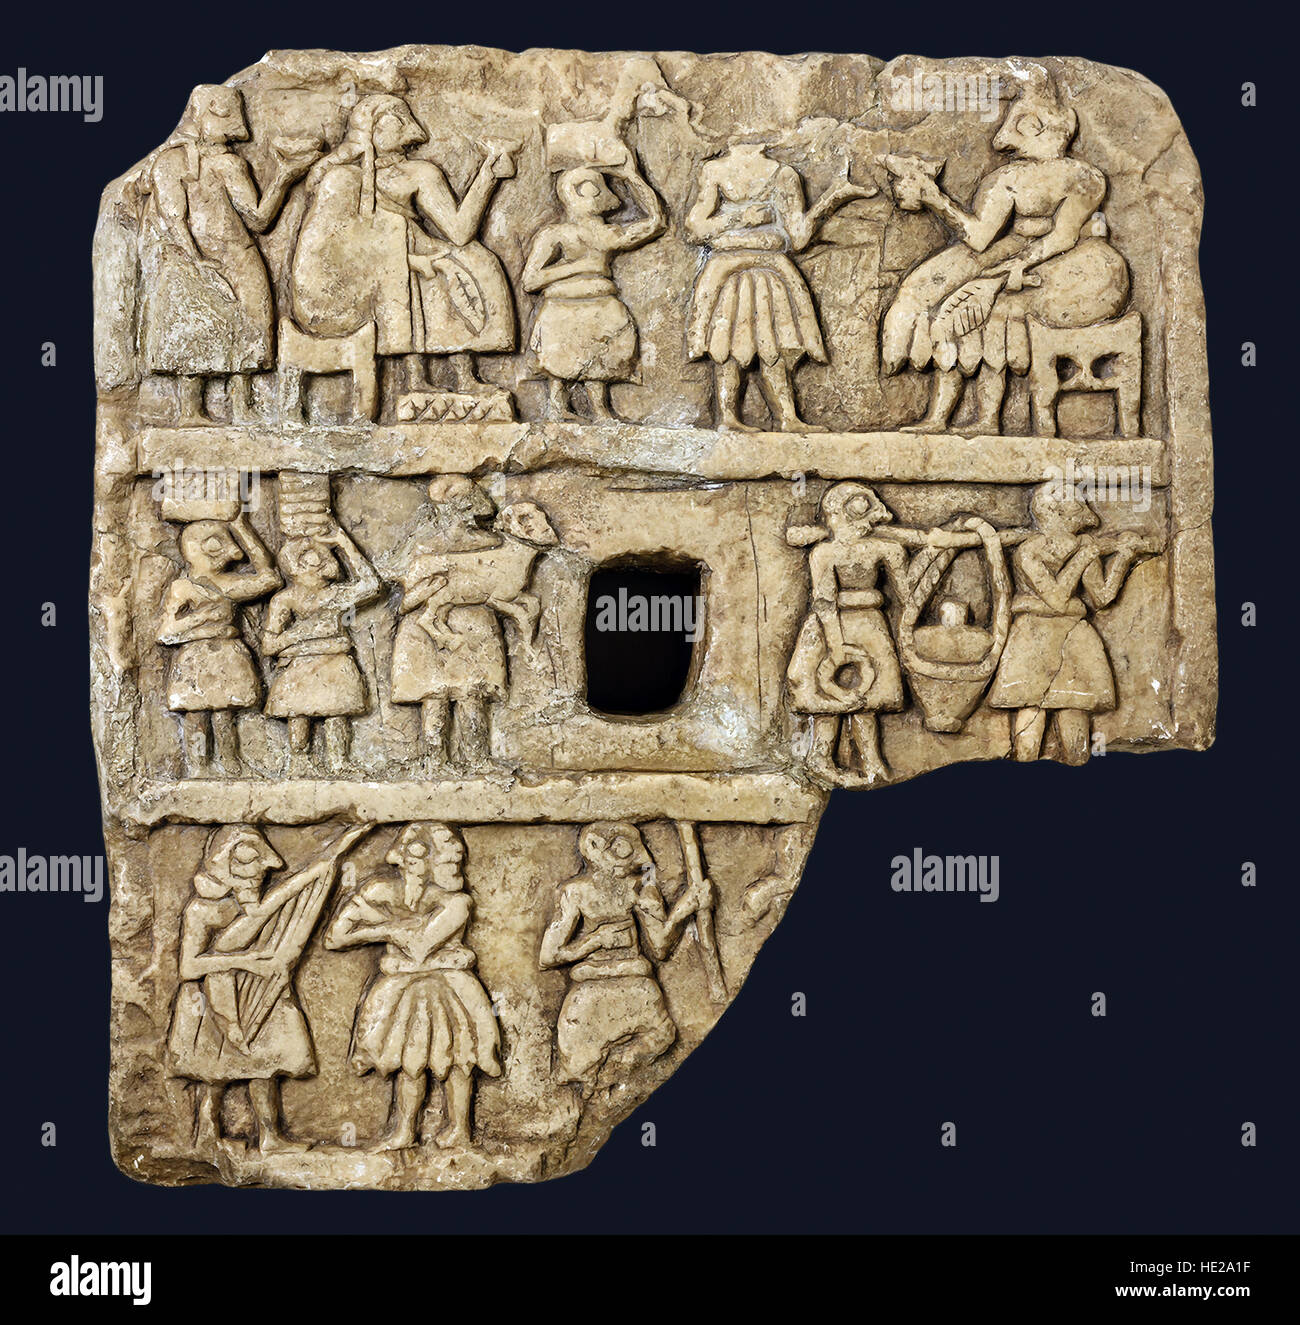 6025. Stone carved plaque depicting a scene of ritual feasting and musicians. Khafajeh, Iraq, Mesopotamia c. 2600 - Stock Image